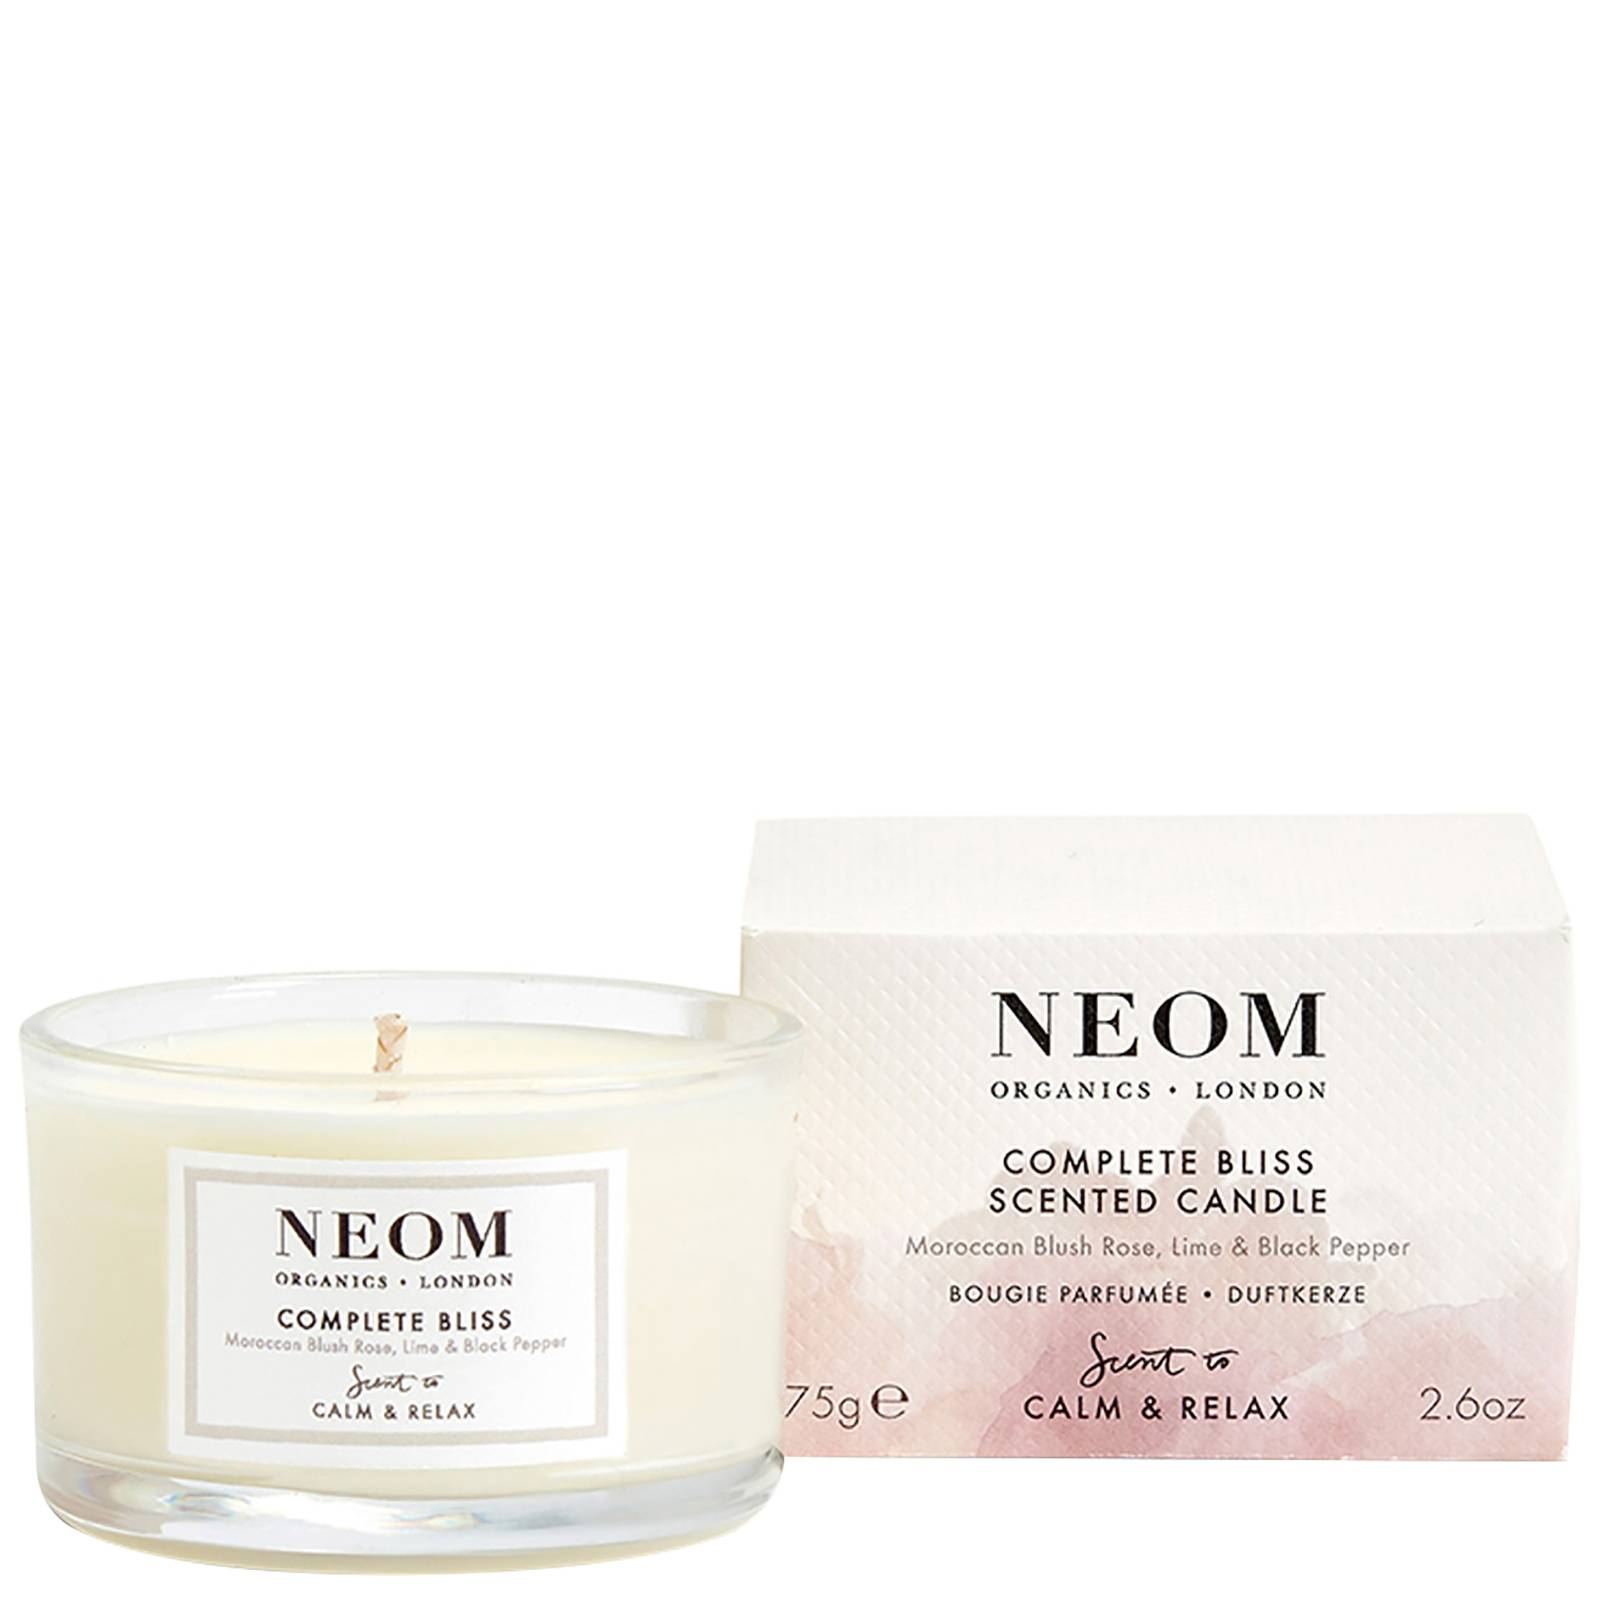 Neom Organics London - Scent To Calm & Relax Complete Bliss Scented Candle (Travel) 75g  for Women